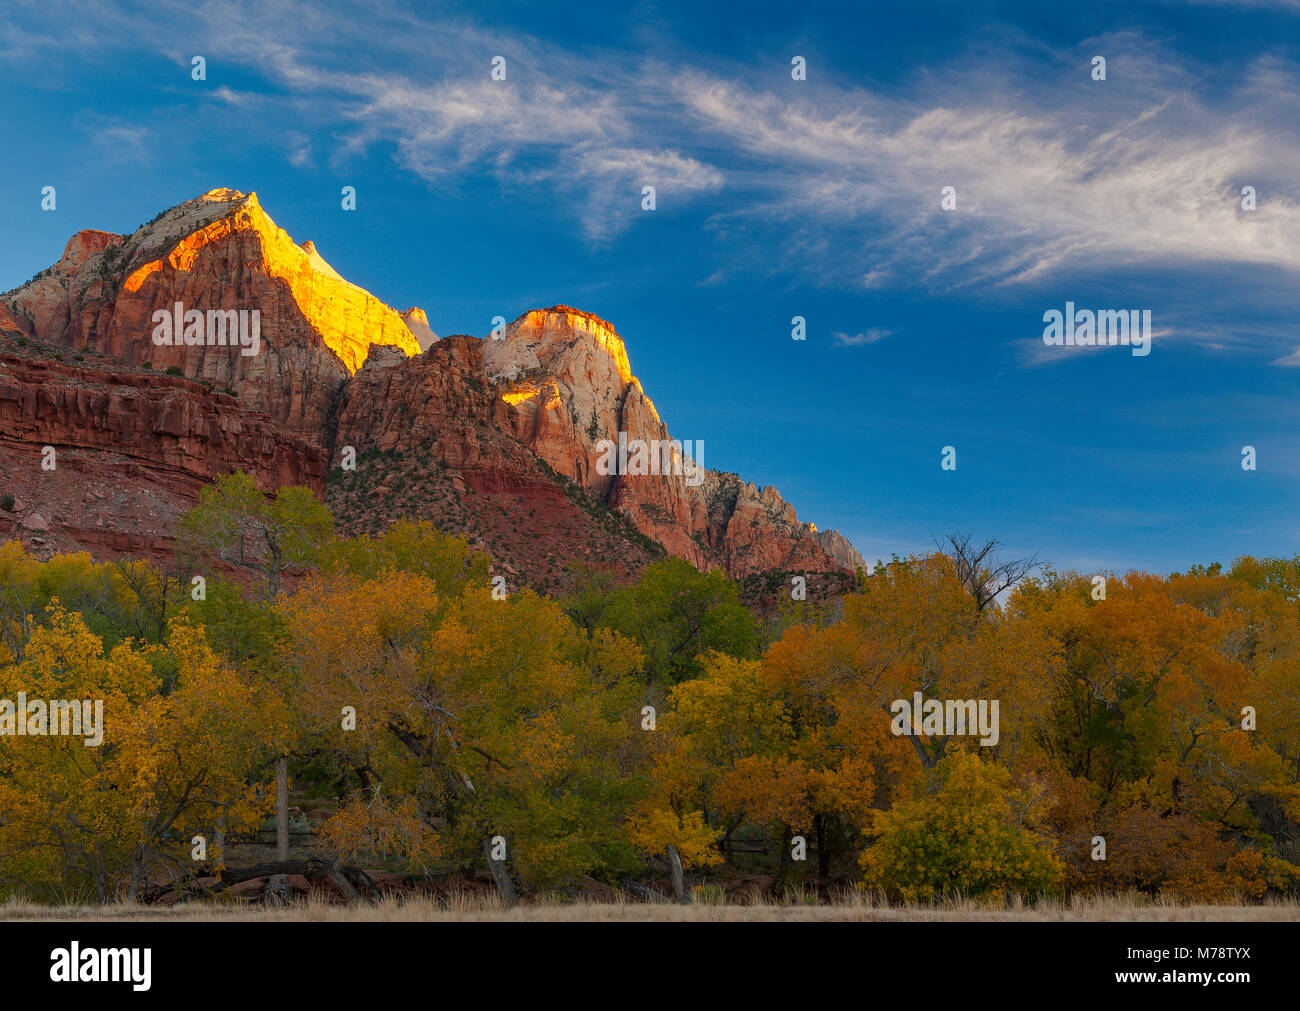 Sunrise, der Sentinel, Zion National Park, Utah Stockbild